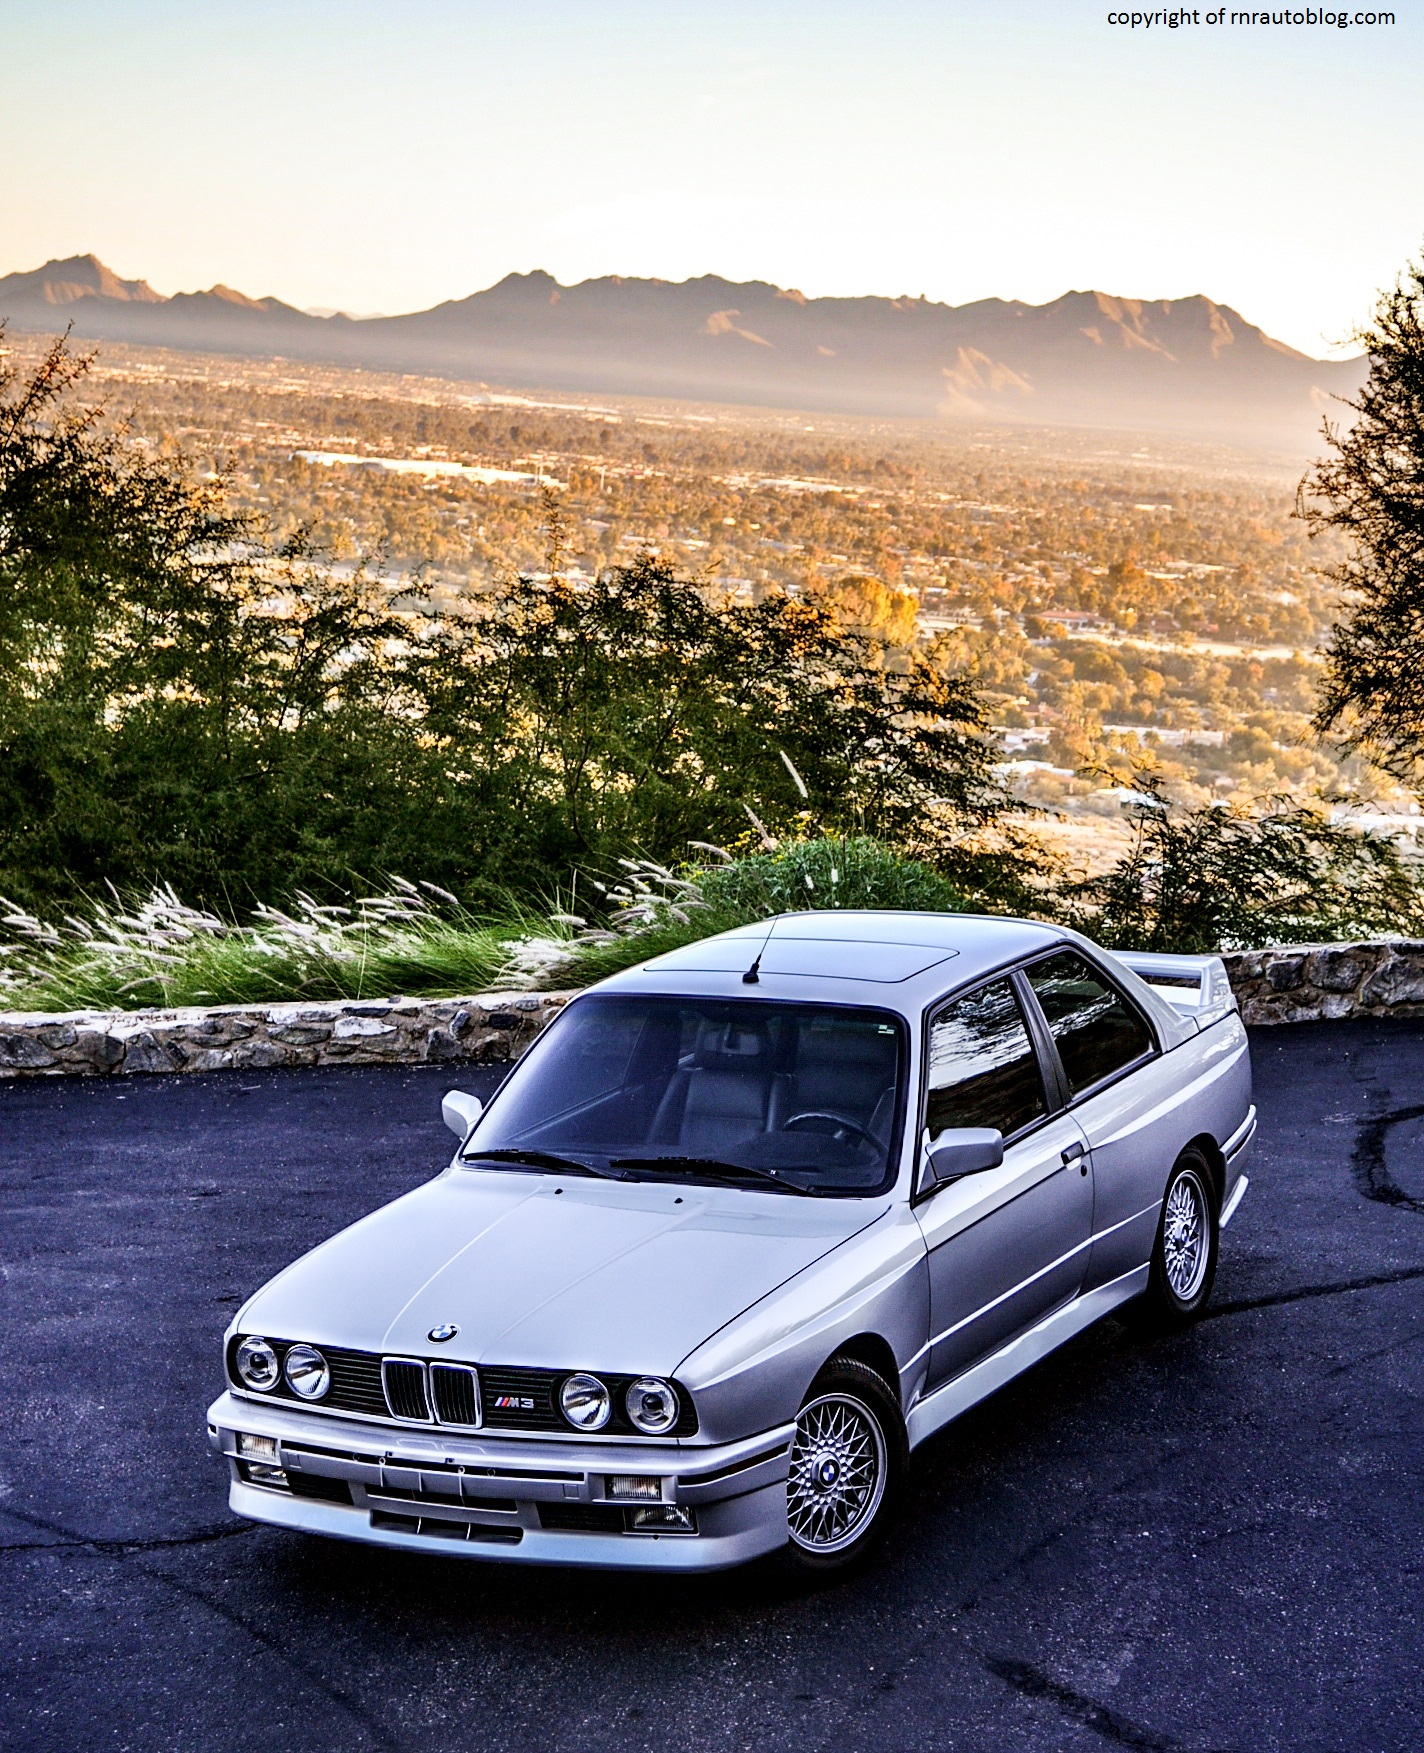 Bmw M3: RNR Automotive Blog